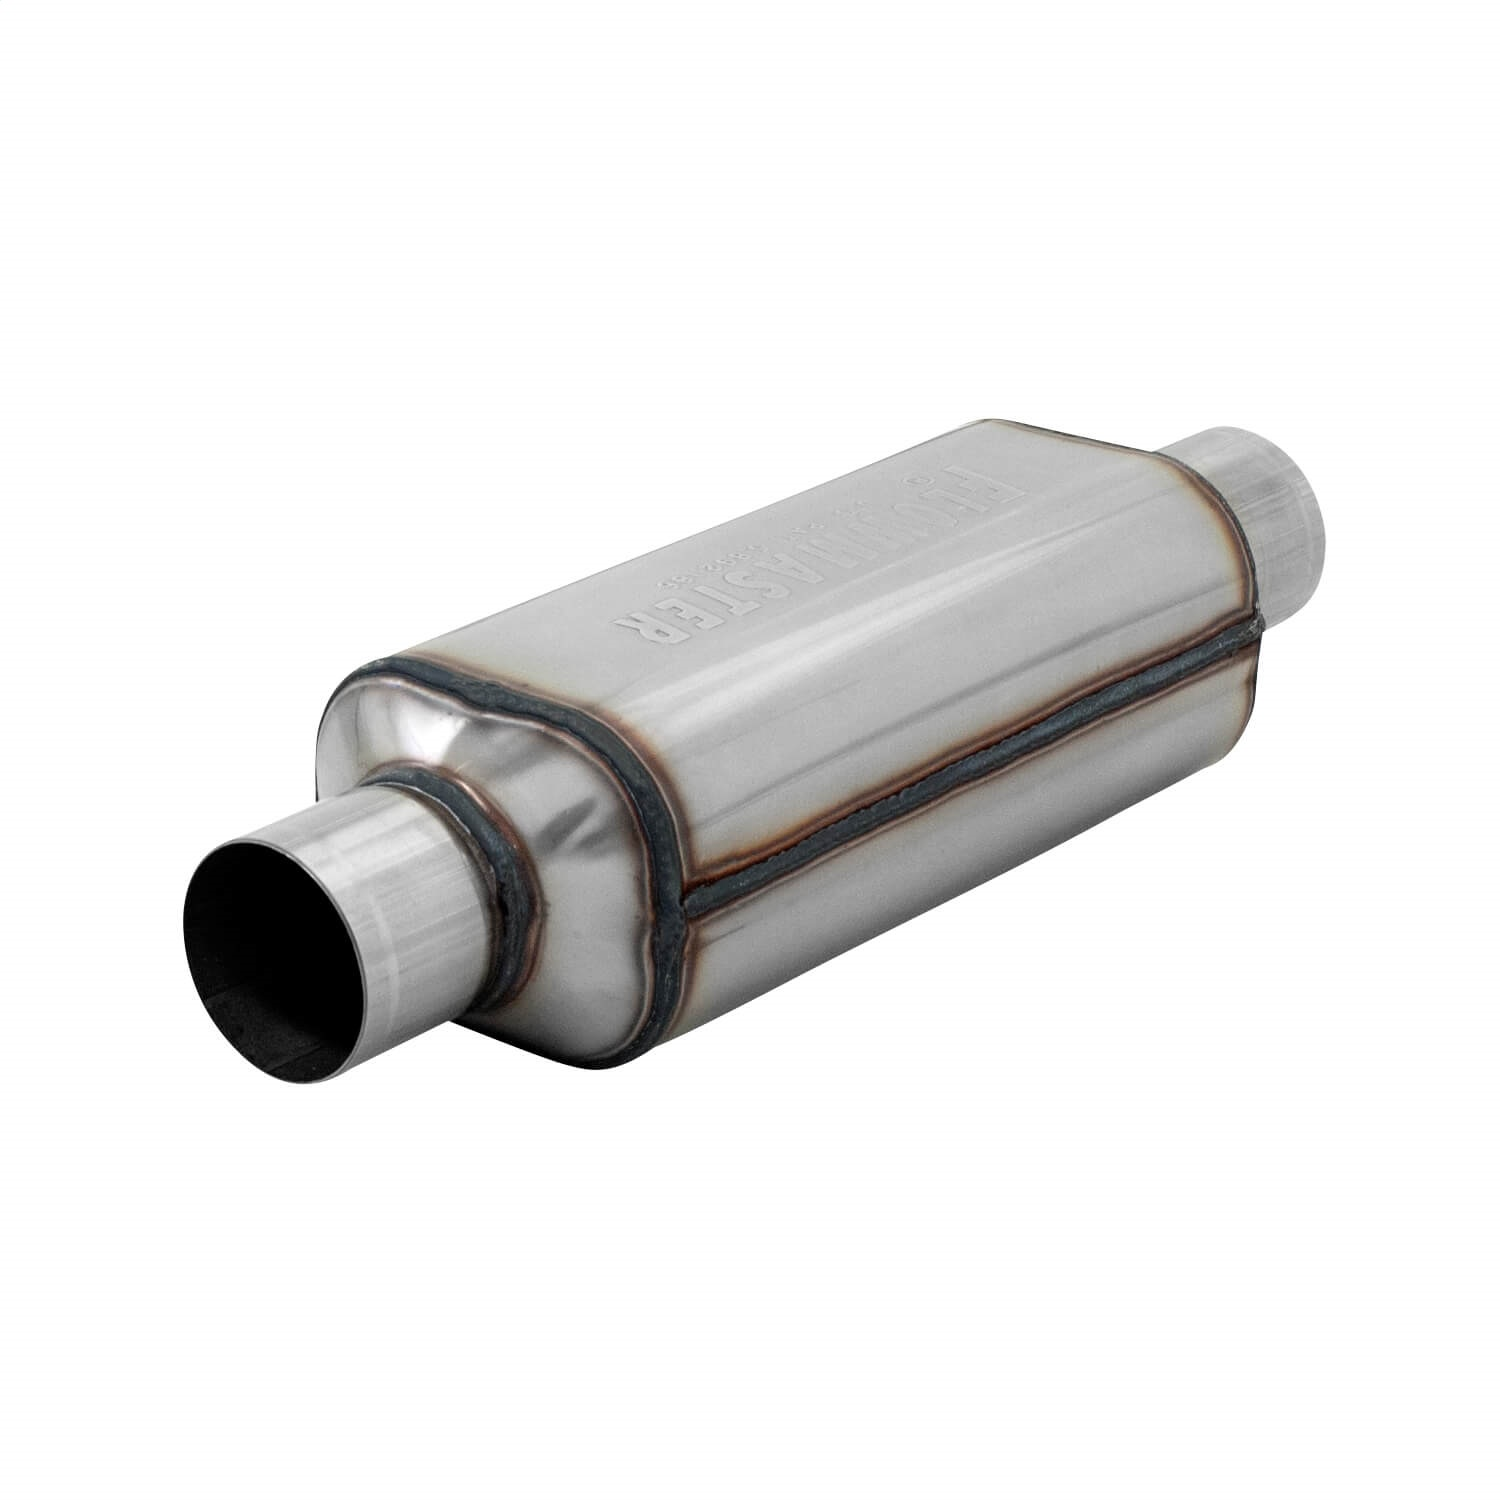 Flowmaster 12512304 Super HP-2 Series Muffler